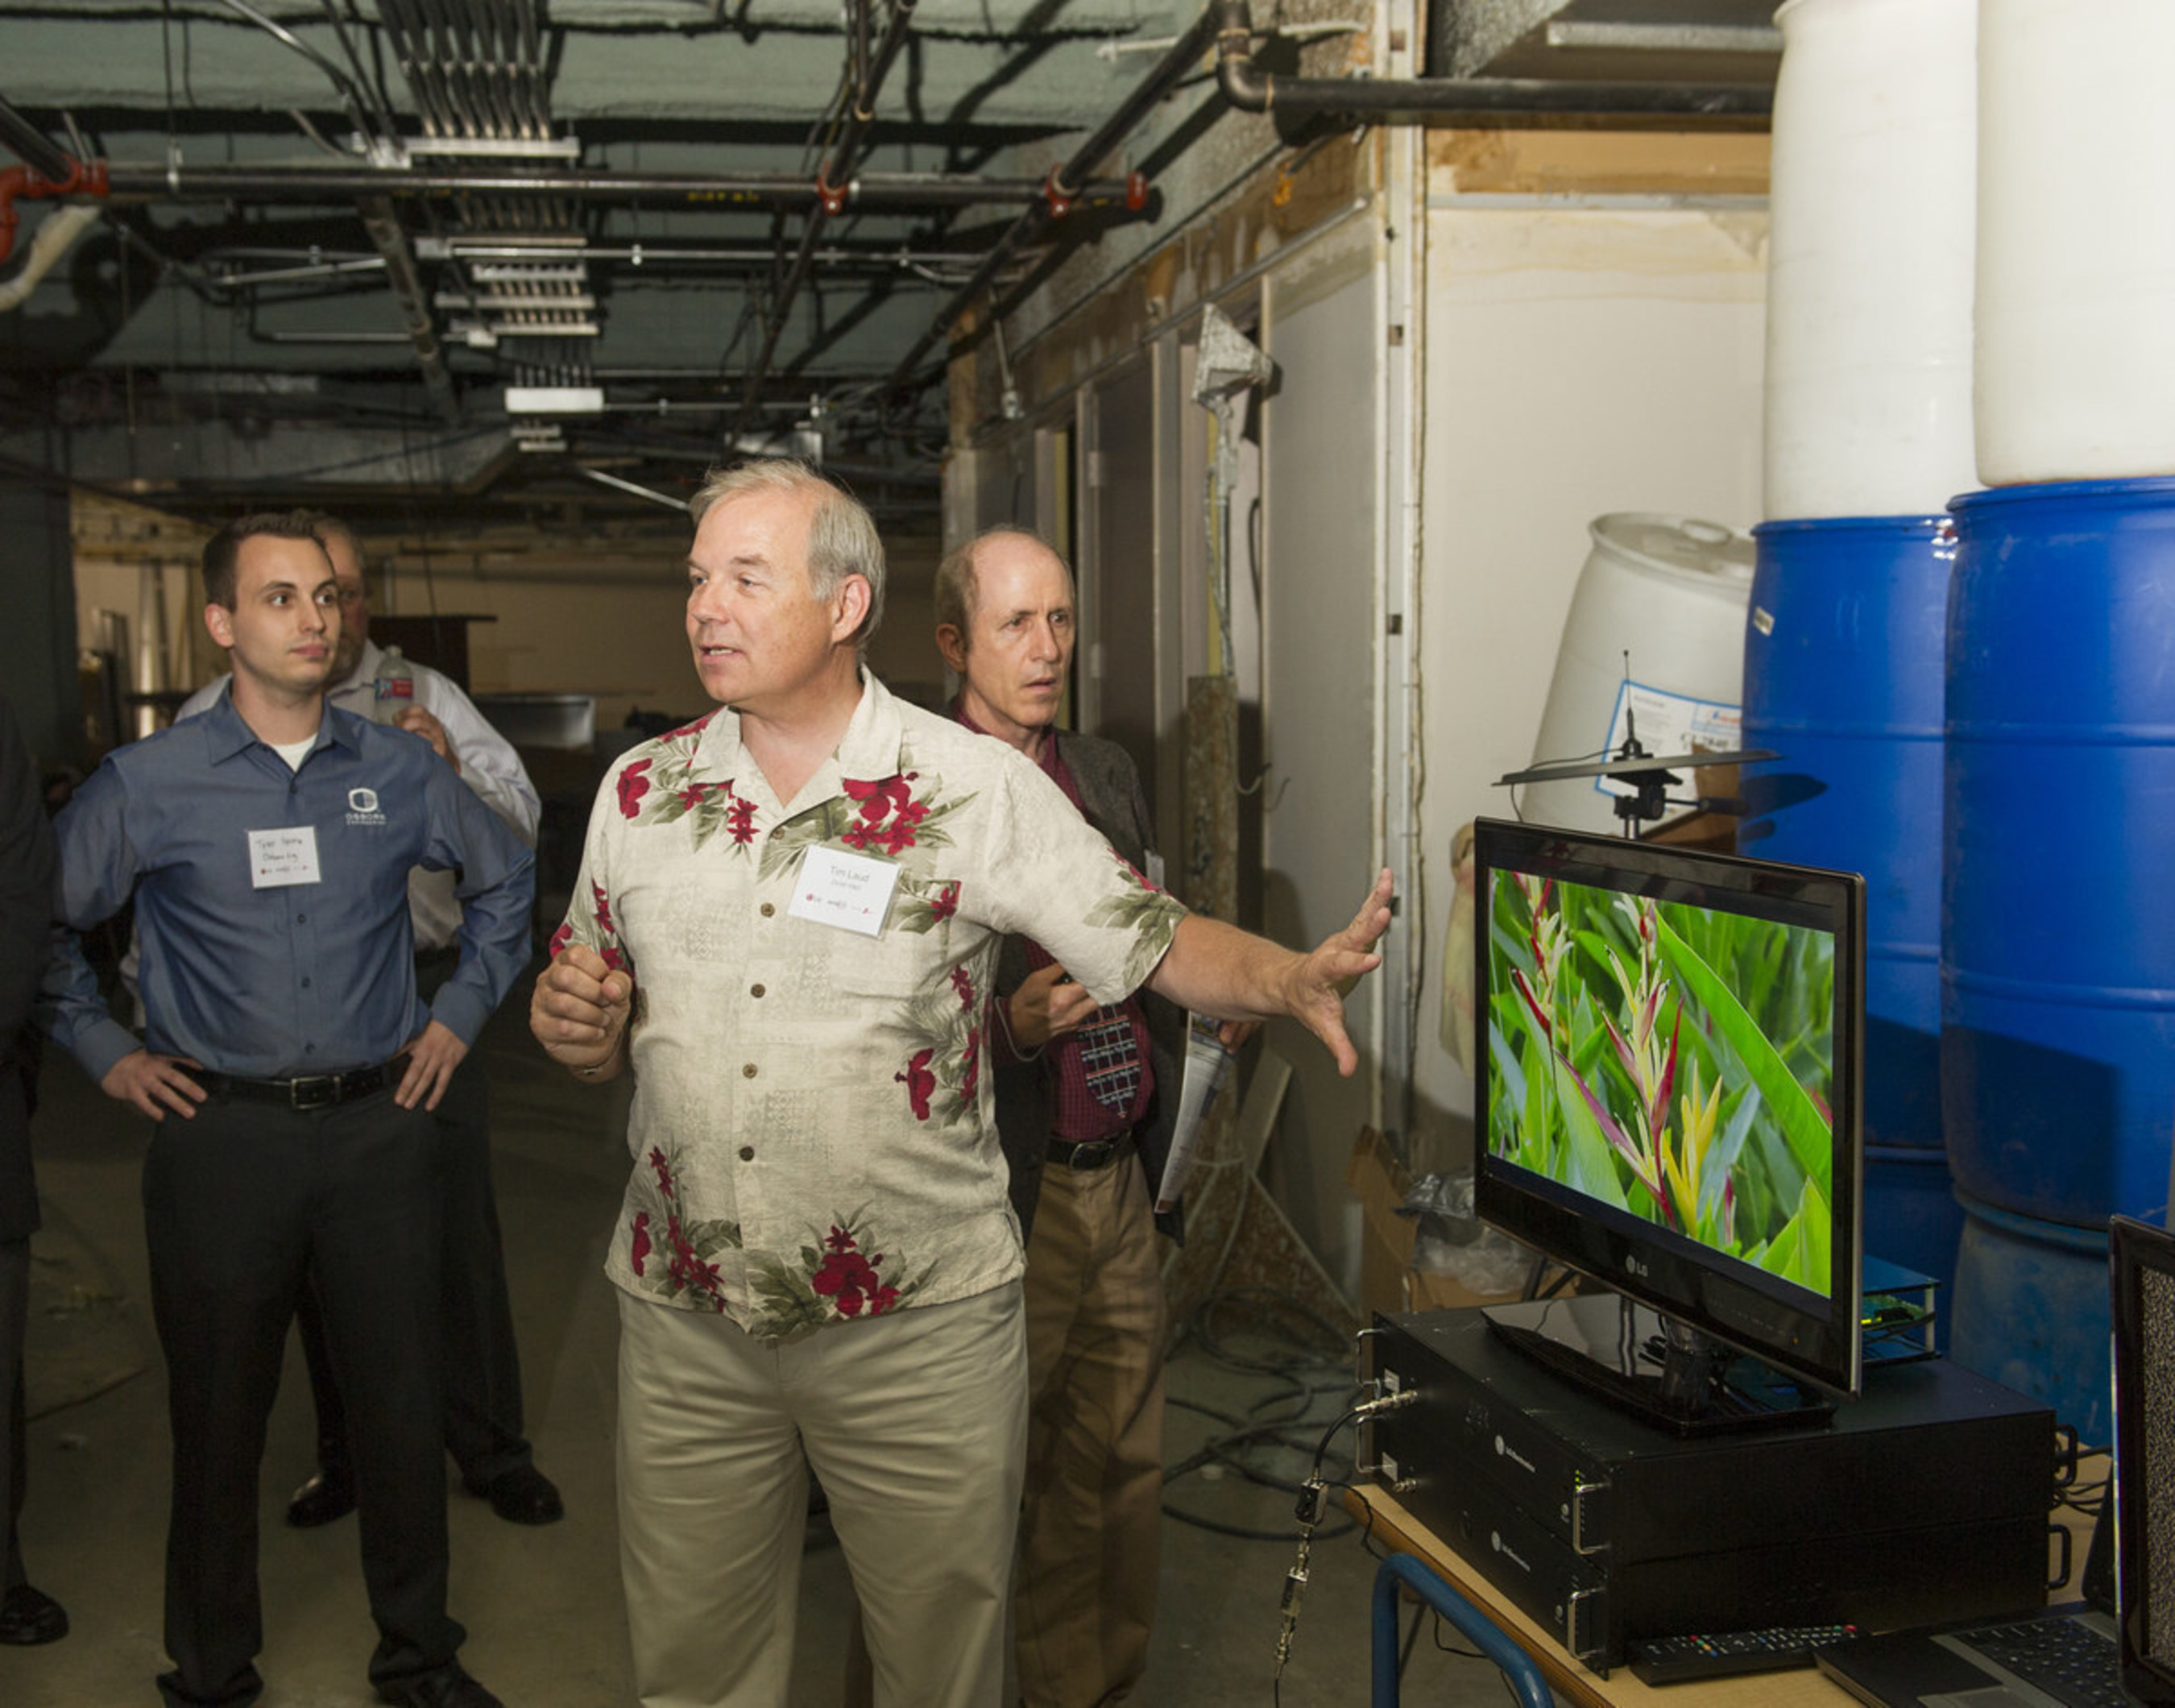 """Zenith engineer Tim Laud explains how the future """"ATSC 3.0"""" next-generation television broadcast standard will deliver signals for superior deep indoor reception as seen in the basement of a commercial building in downtown Cleveland where LG Electronics and GatesAir have been field-testing their new technology. (Photo by Phil Long/AP Images for LG Electronics USA)"""